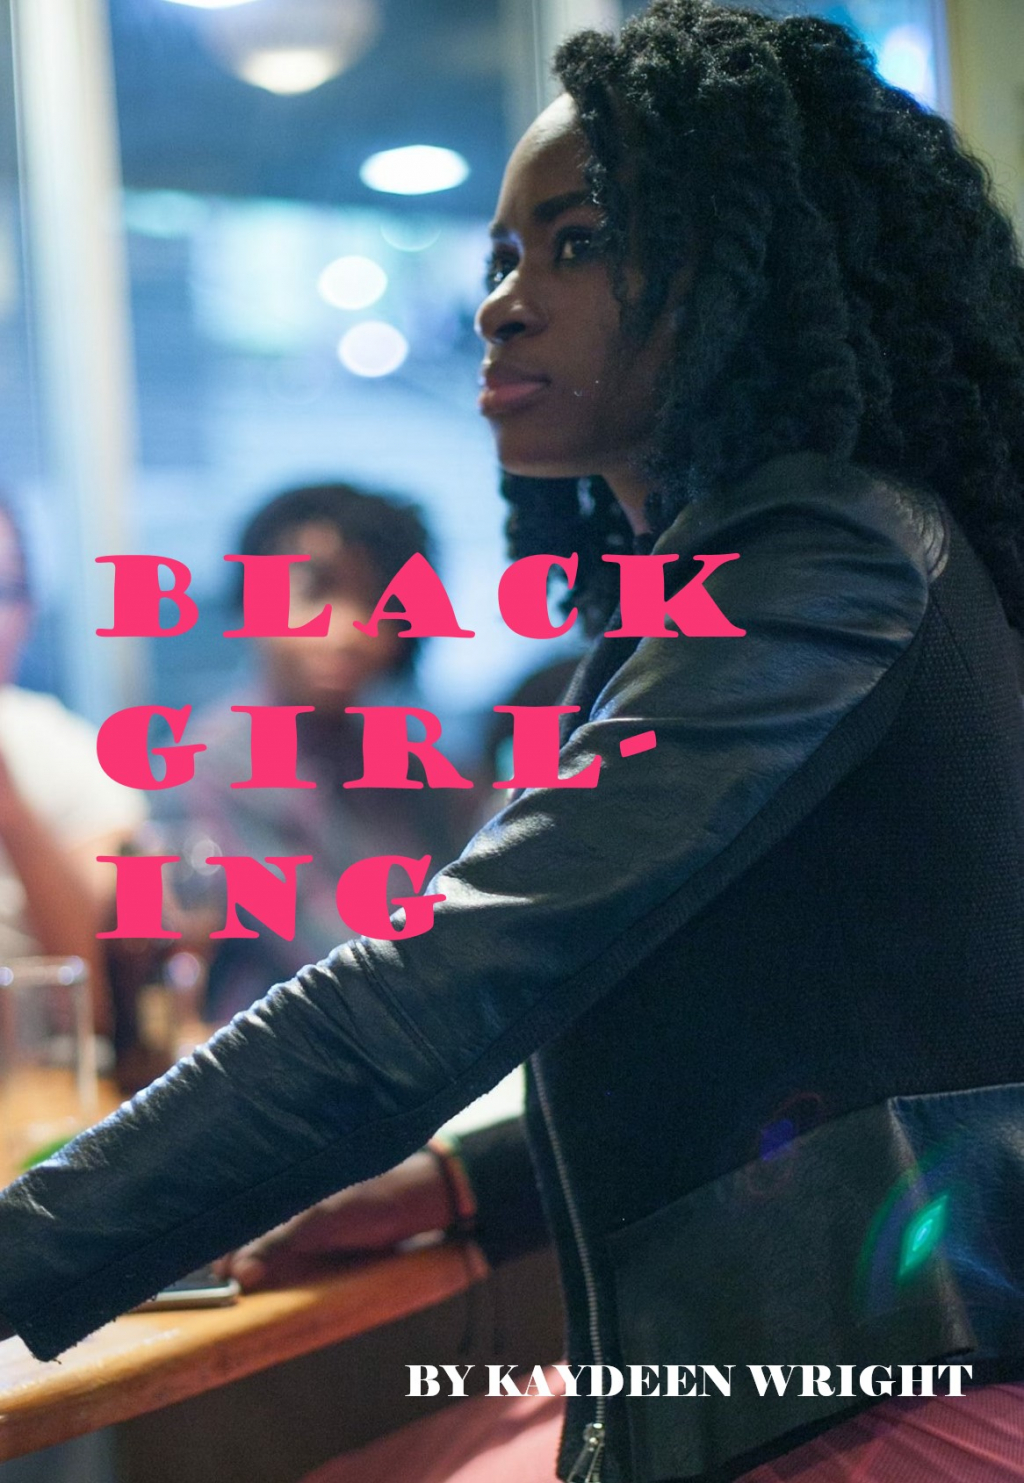 Thumbnail of: Buy Black Girl-ing Book, Get 20% off any service!